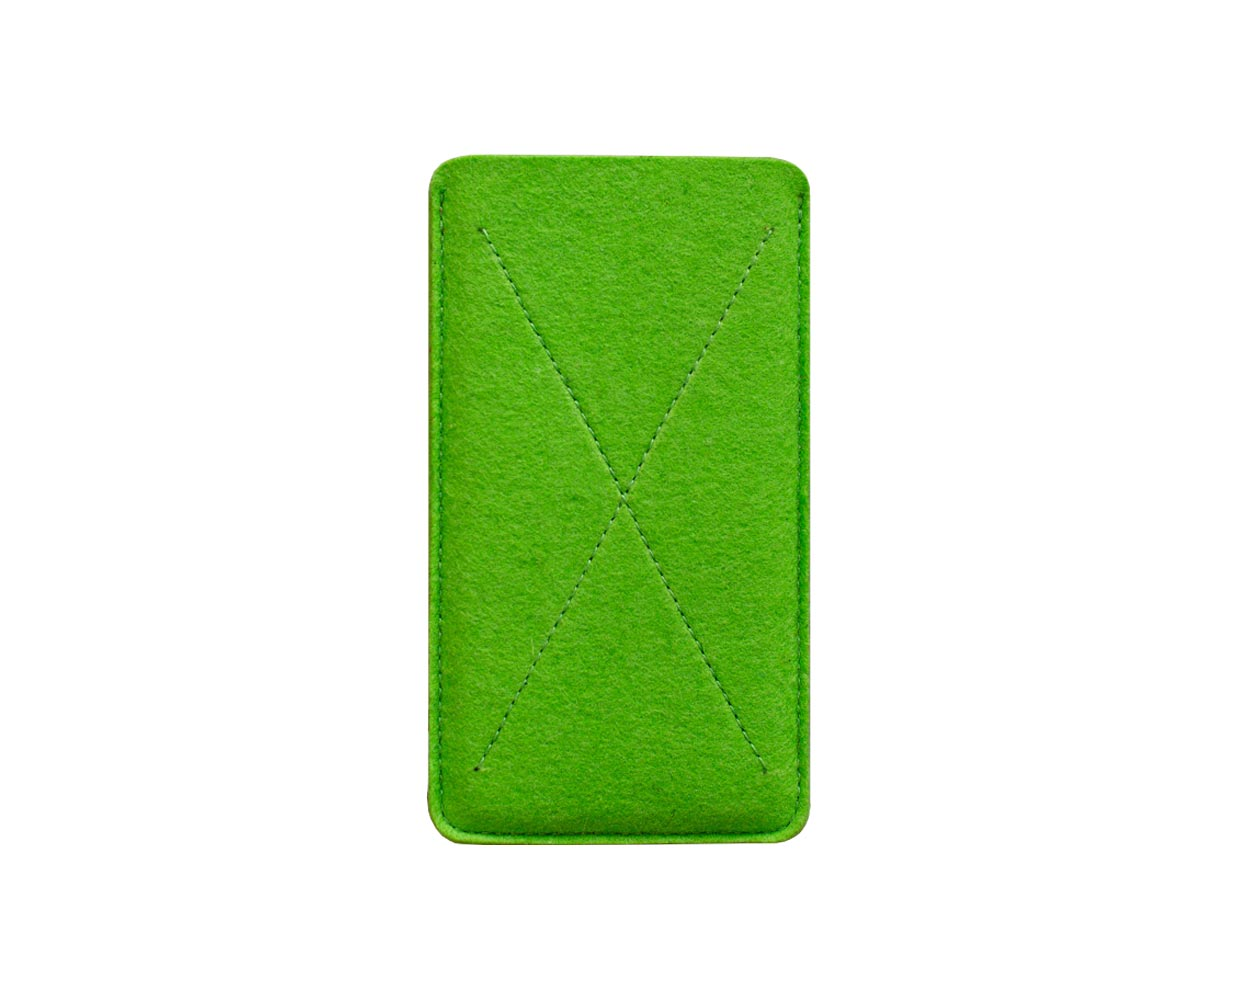 Чехлы: CROSS Green iPhone 6 Plus, фотография №1